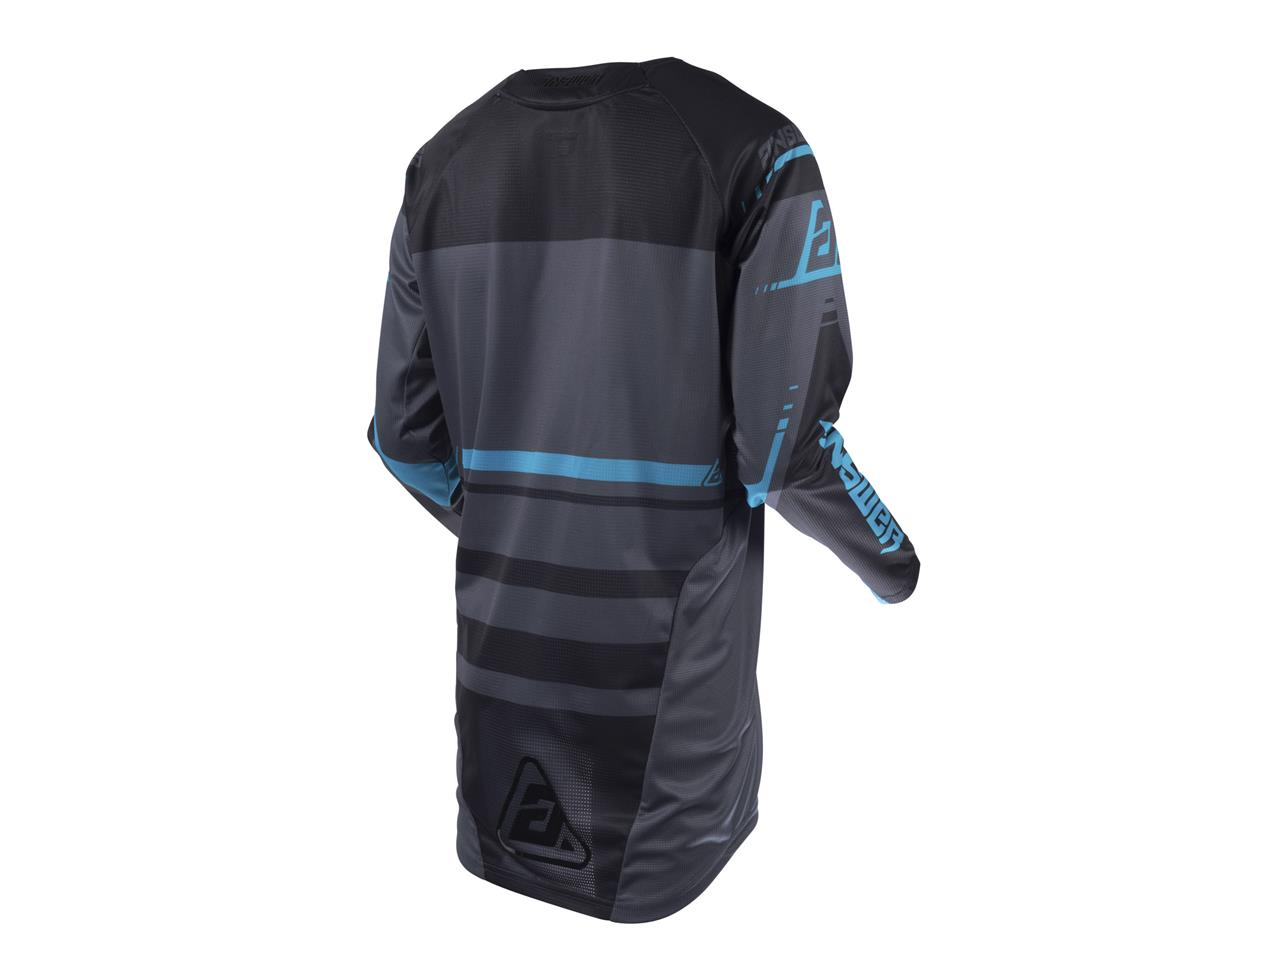 Maillot answer elite force charcoal black astana 2